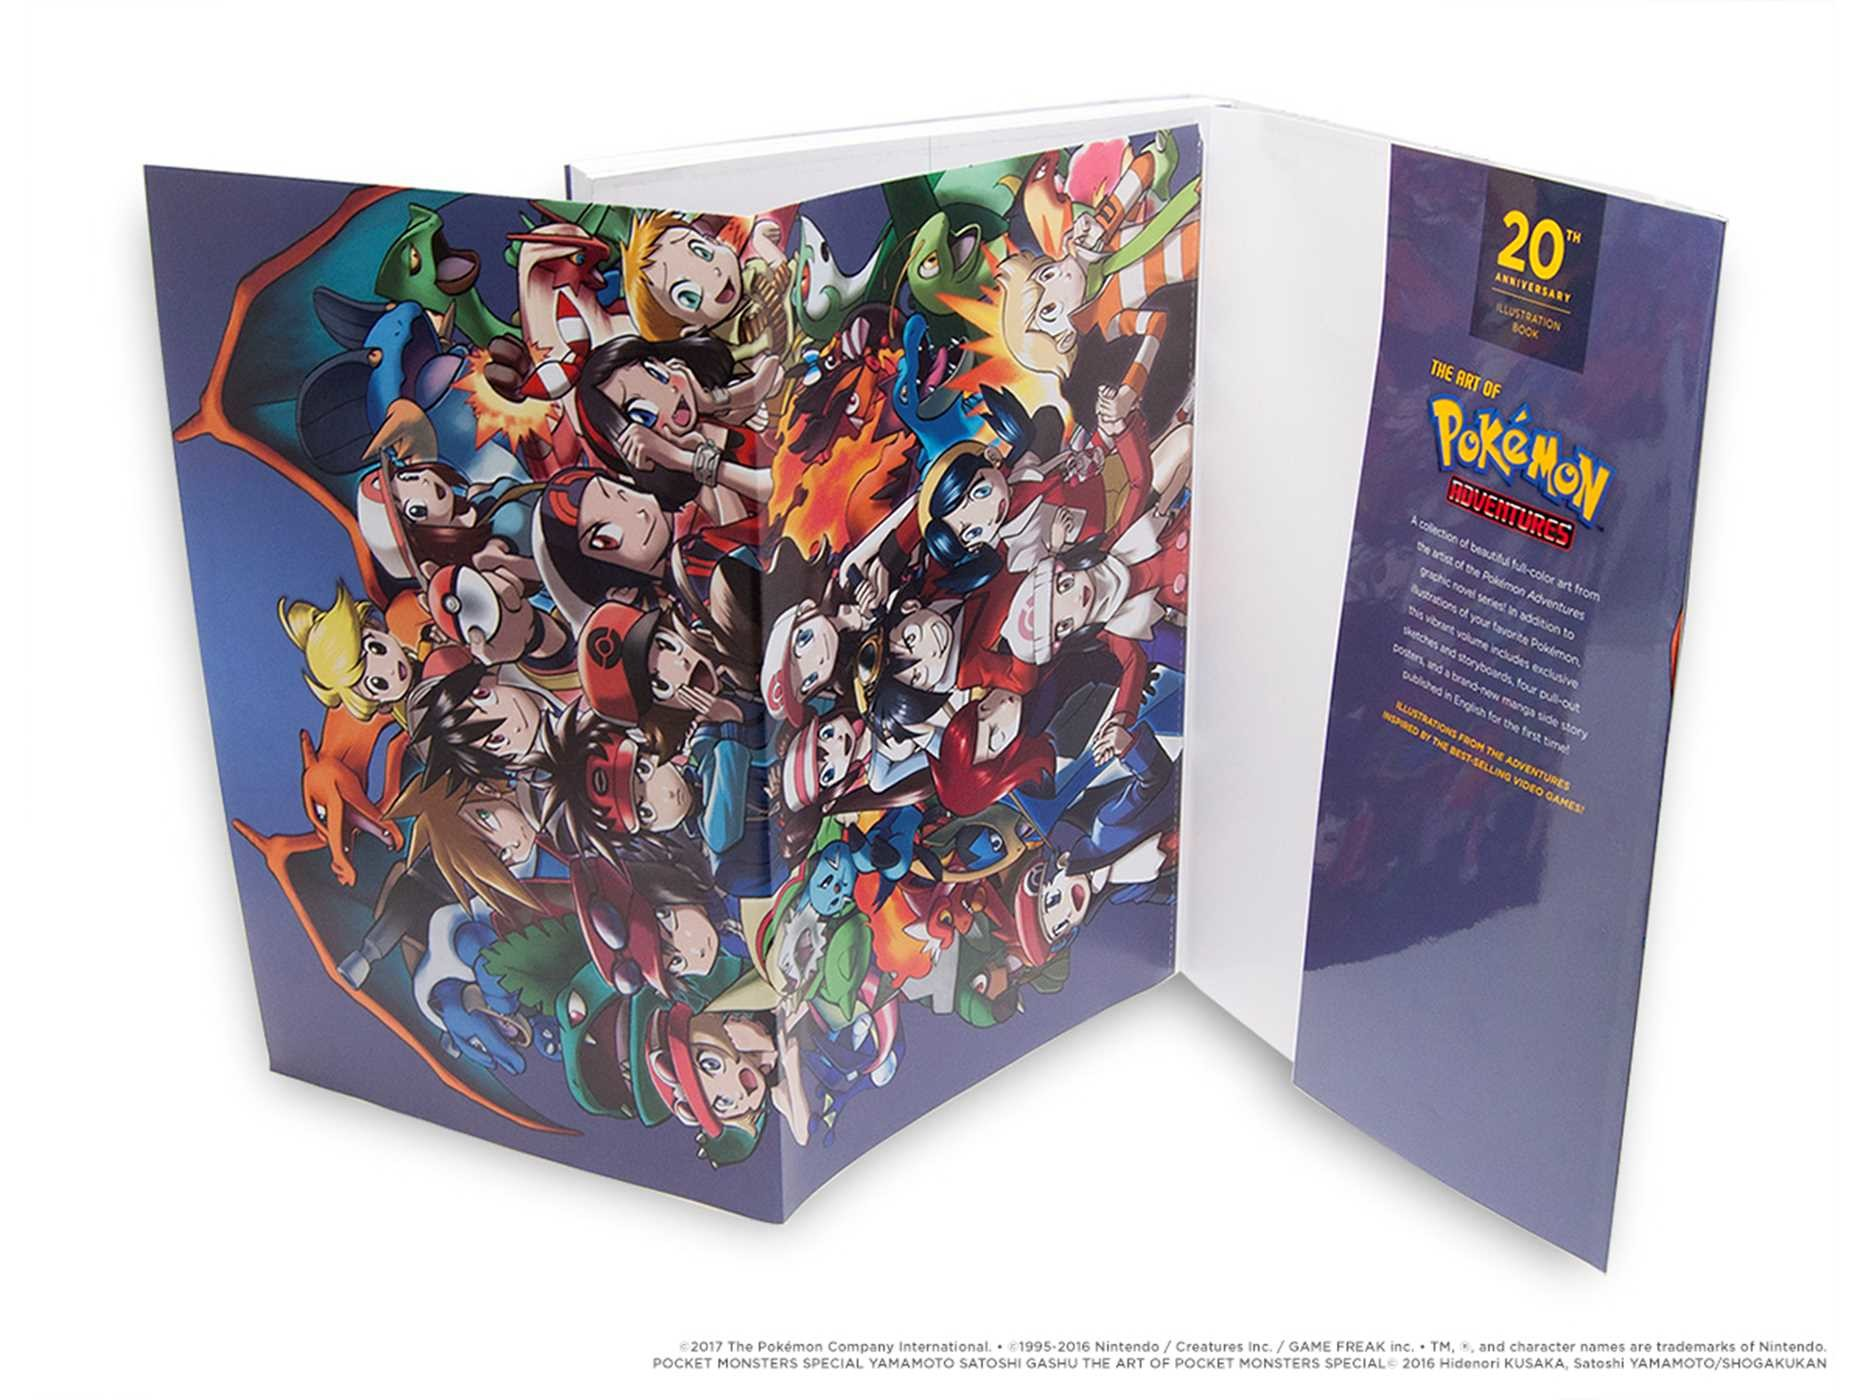 Pokemon adventures 20th anniversary illustration book 9781421594514.in03